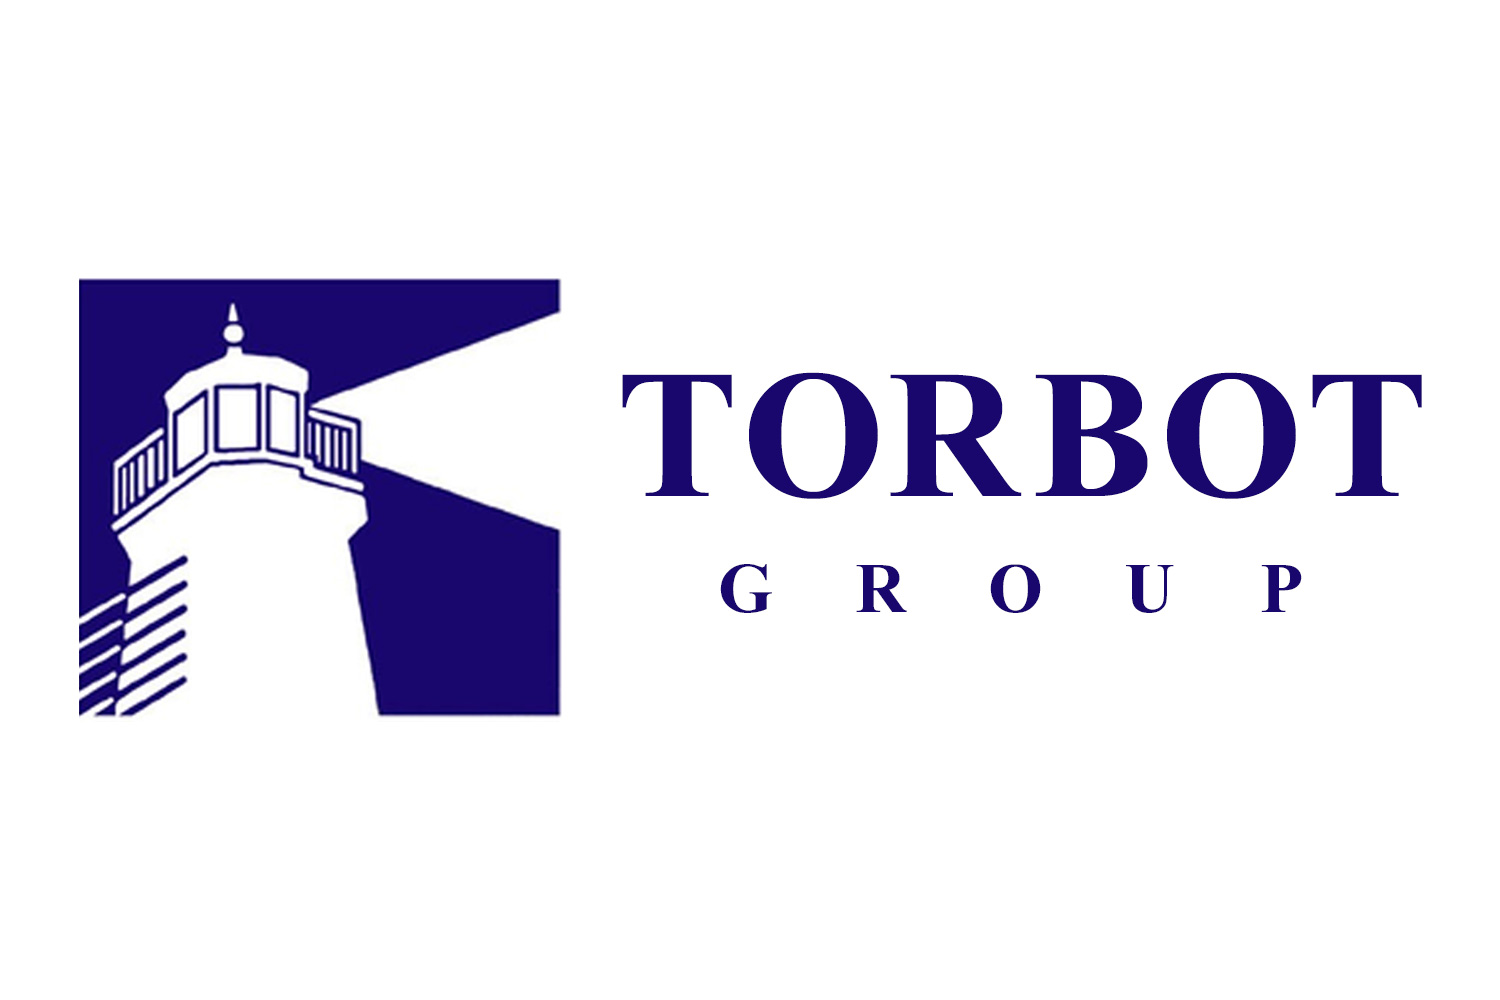 Torbot Group logo